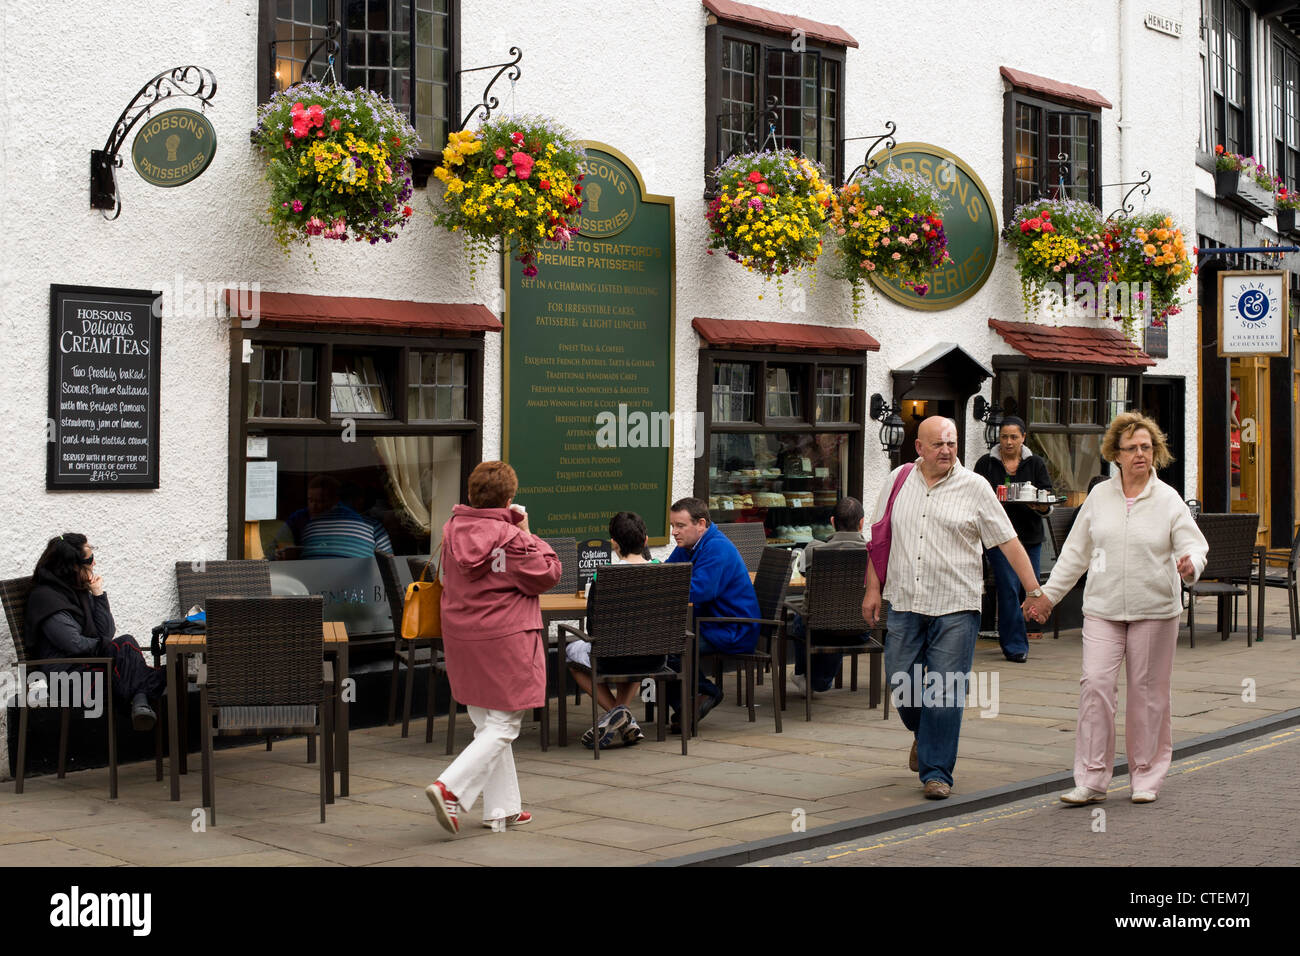 hanging baskets, people sitting outside a cafe and visitors in Henley Street, Stratford upon Avon, Warwickshire. - Stock Image